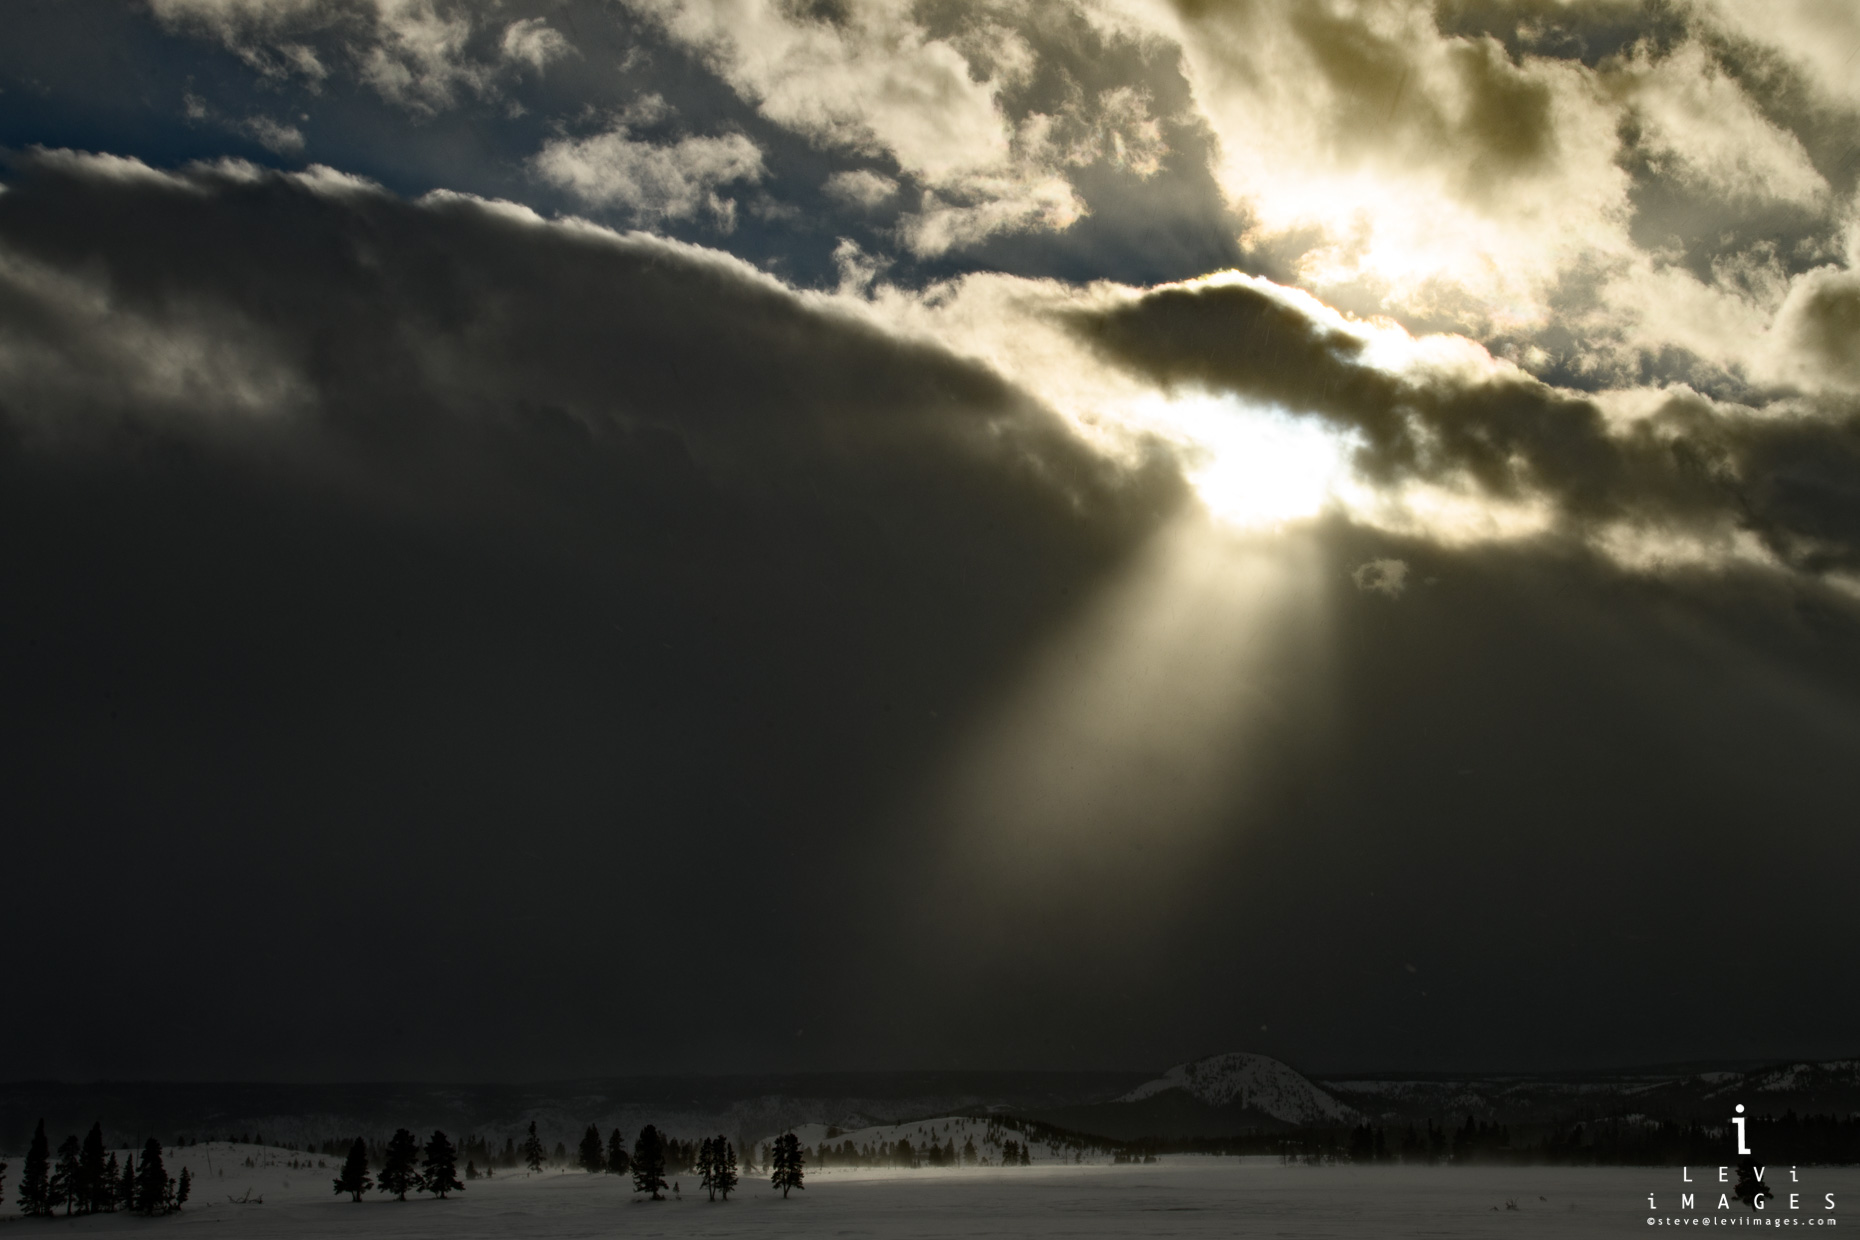 Dramatic god-beam landscape. Yellowstone National Park, Wyoming